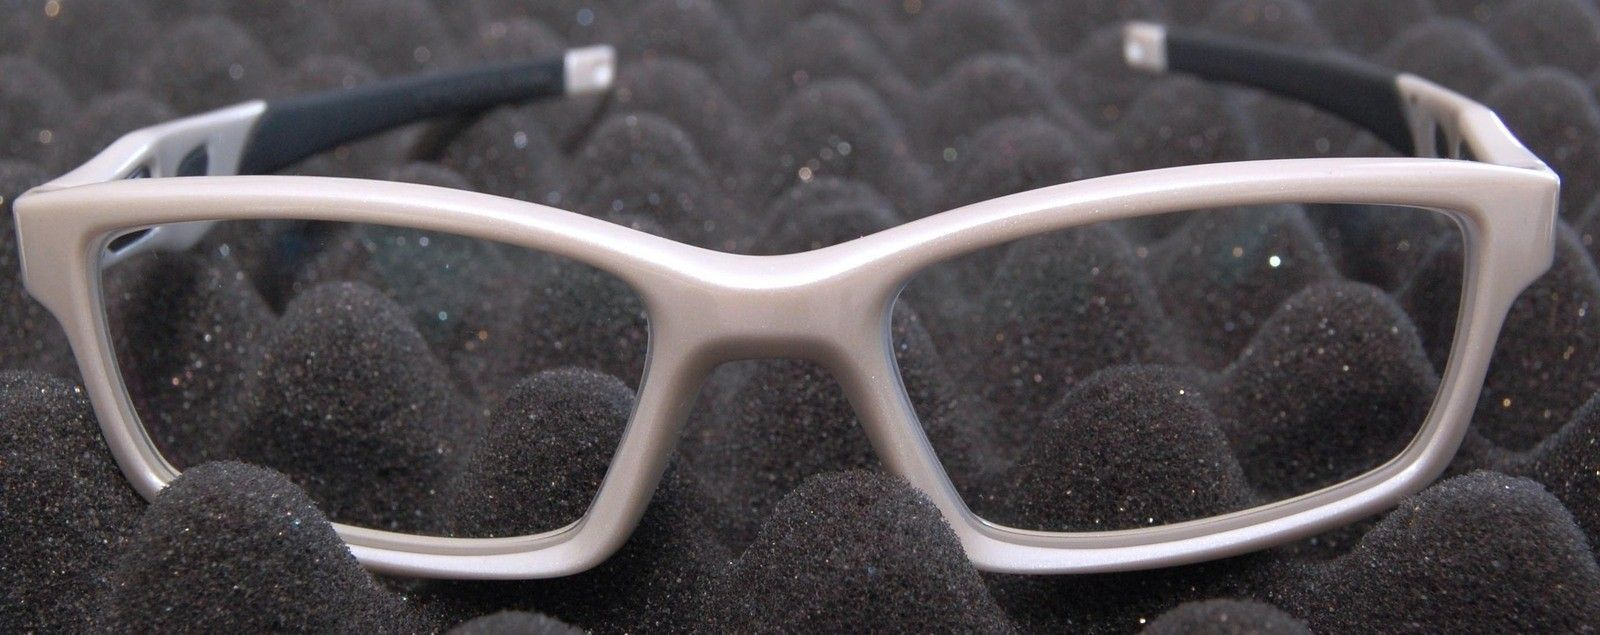 Oakley Crosslink OX8027-0453 Pearl White / Grey Rx Prescription - 05.jpg